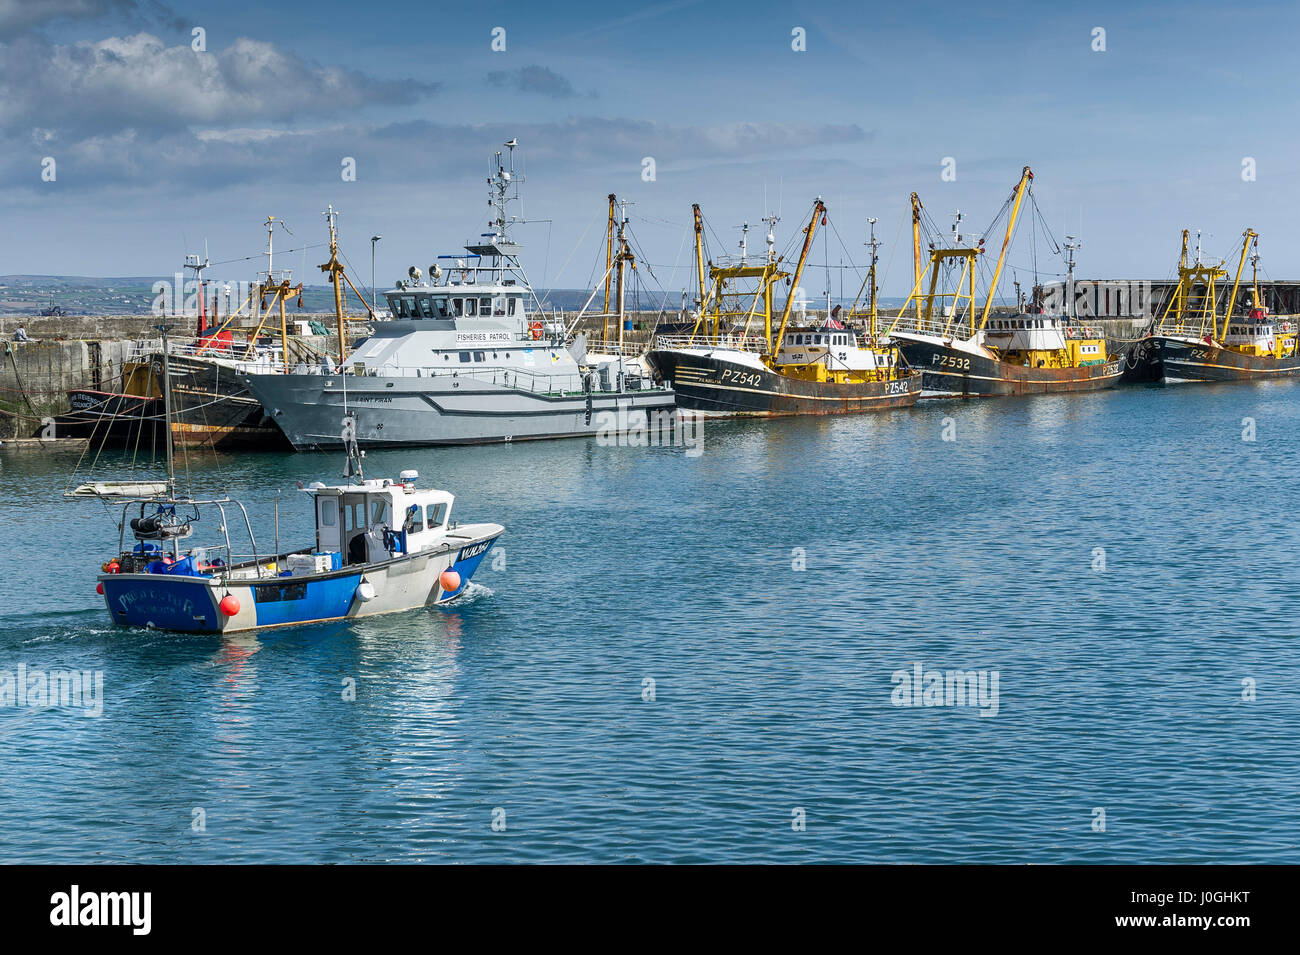 Newlyn Fishing Port WH264 Prospector Harbour Harbor Fishing boat Fishing vessel Fishing boats Fishing vessels Beam - Stock Image